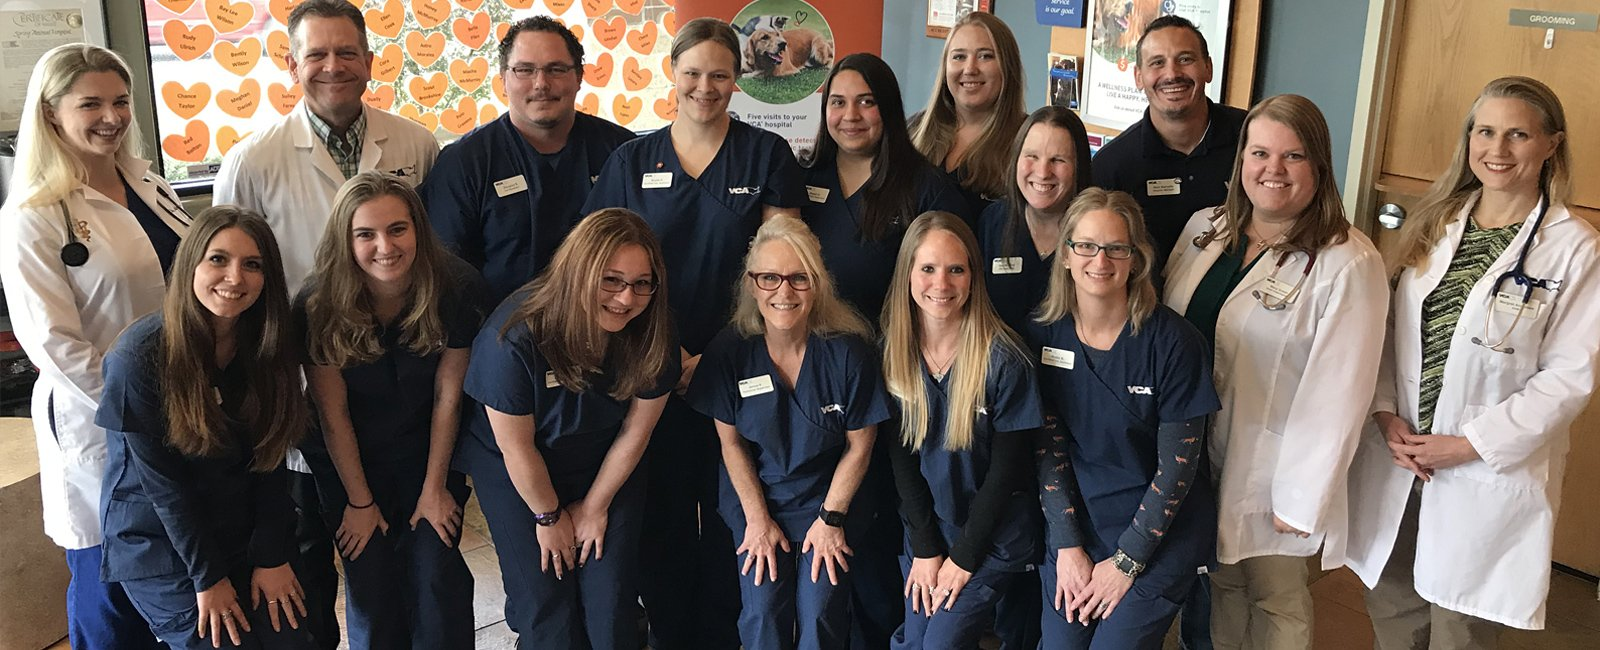 Team Picture of VCA Spring Animal Hospital